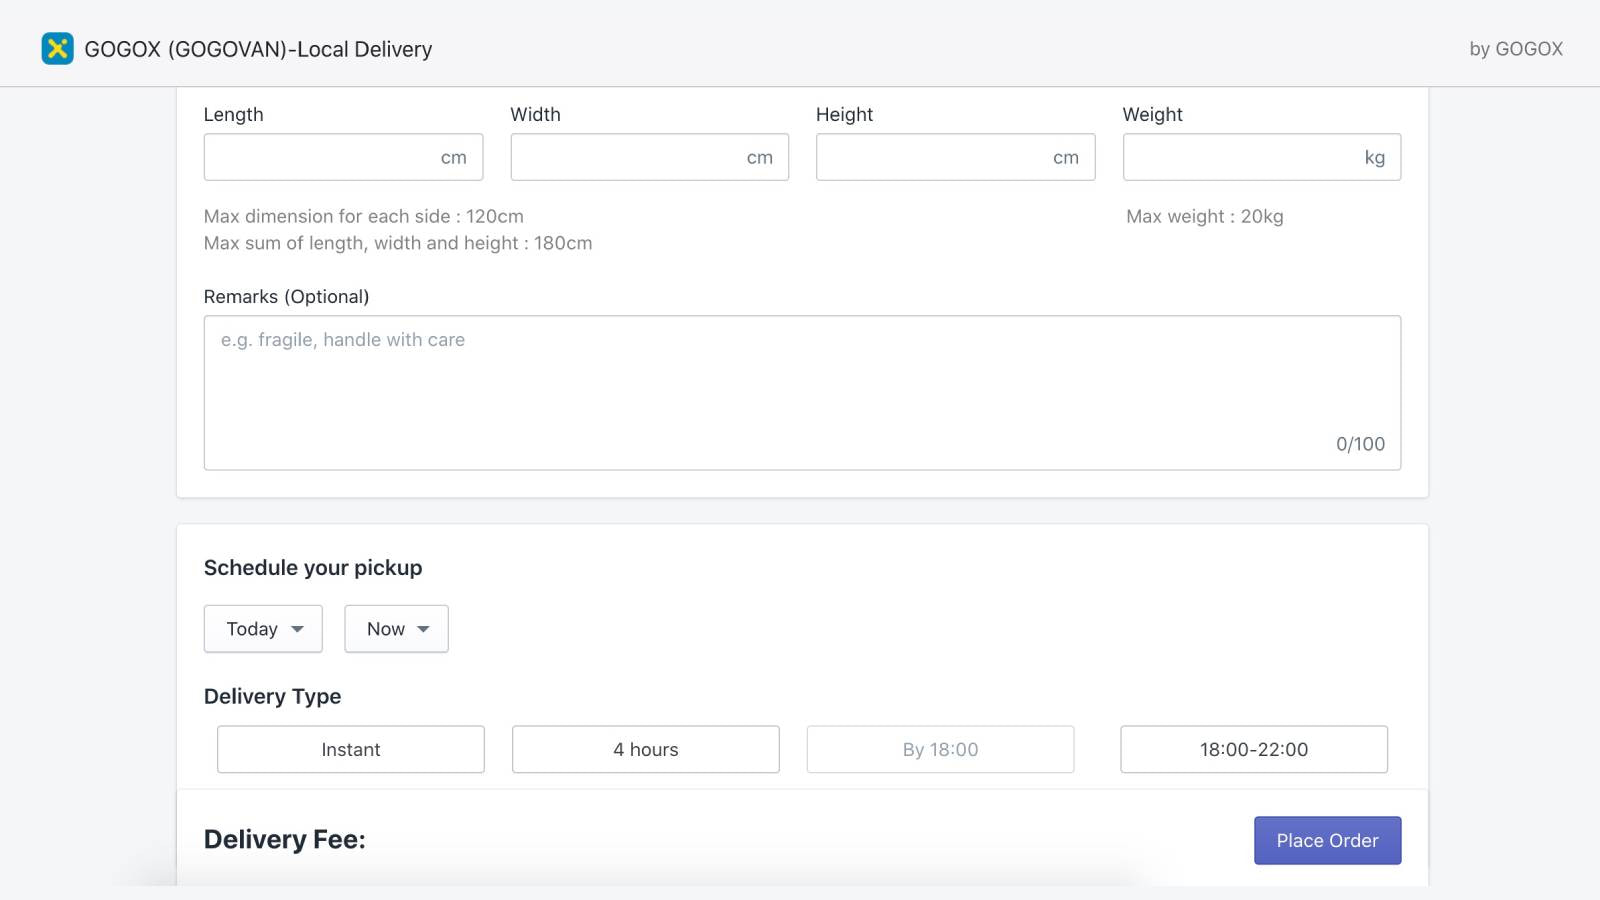 Fill in the details, get fee estimation before placing an order